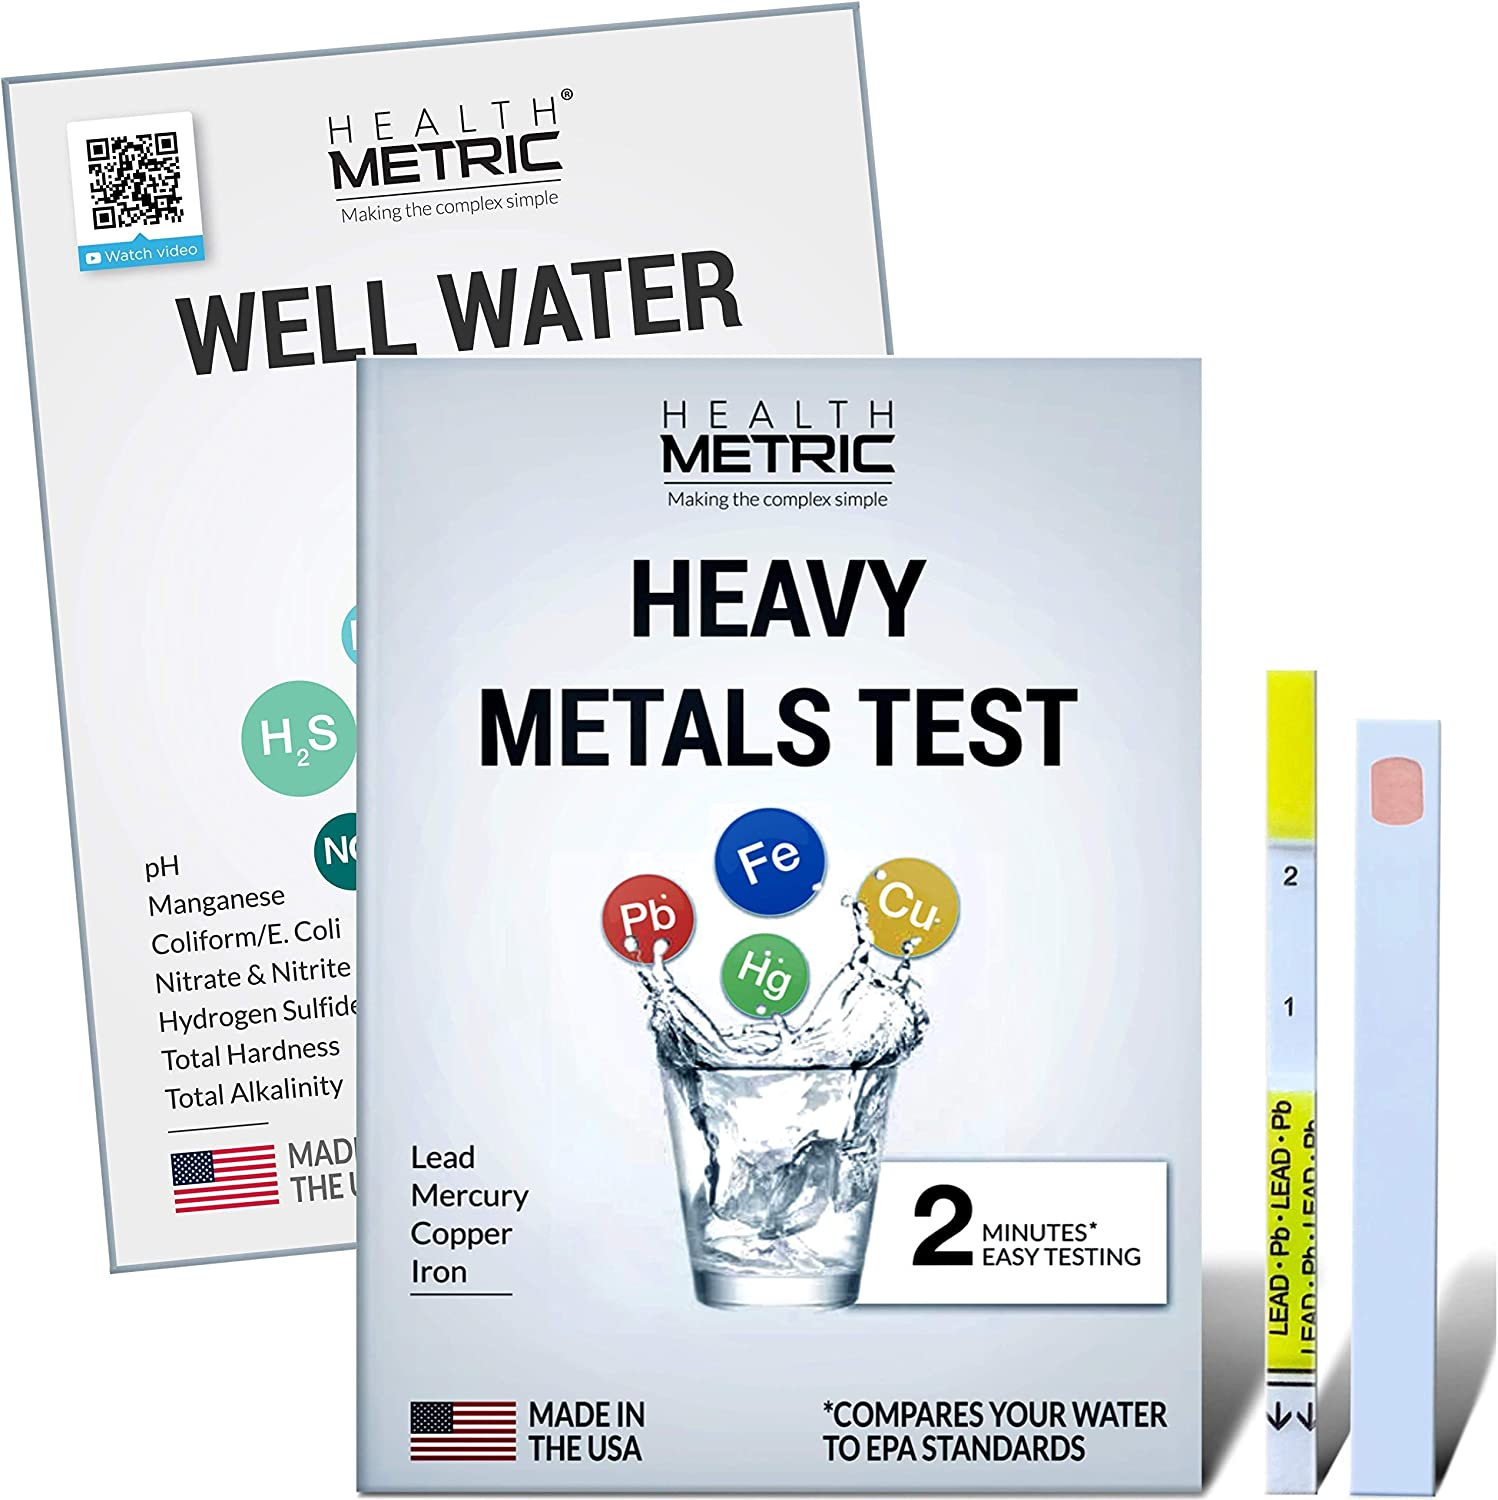 Well Water & Heavy Metals Test Kit for Drinking Water - Quick & Easy Home Water Testing Kit for Lead Iron Copper Bacteria Nitrate Nitrite pH Manganese & More | Made in The USA in Line with EPA Limits